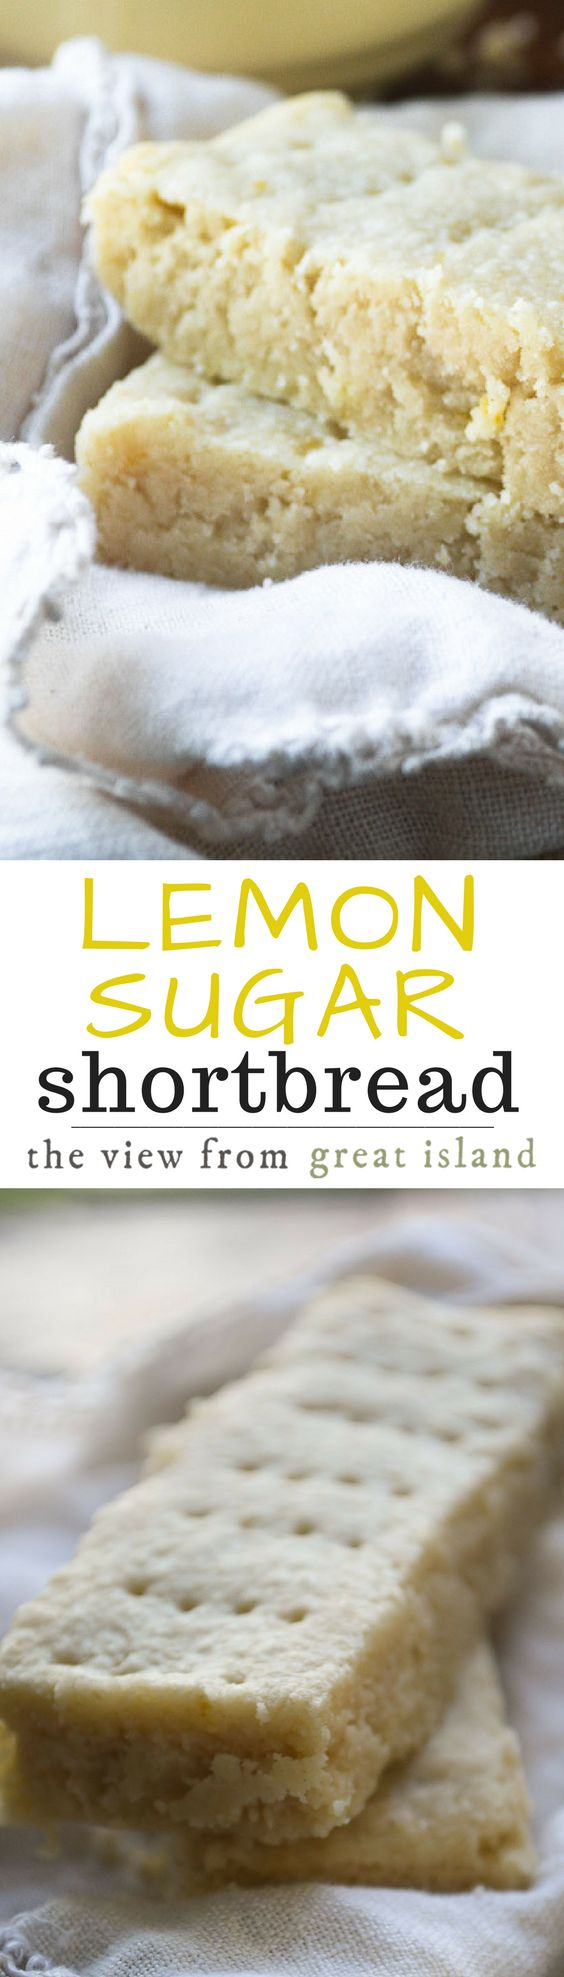 This unusual Scottish Lemon Sugar Shortbread is made with a fabulous sugar infused with lemon rind --- the lemon flavor really pops!